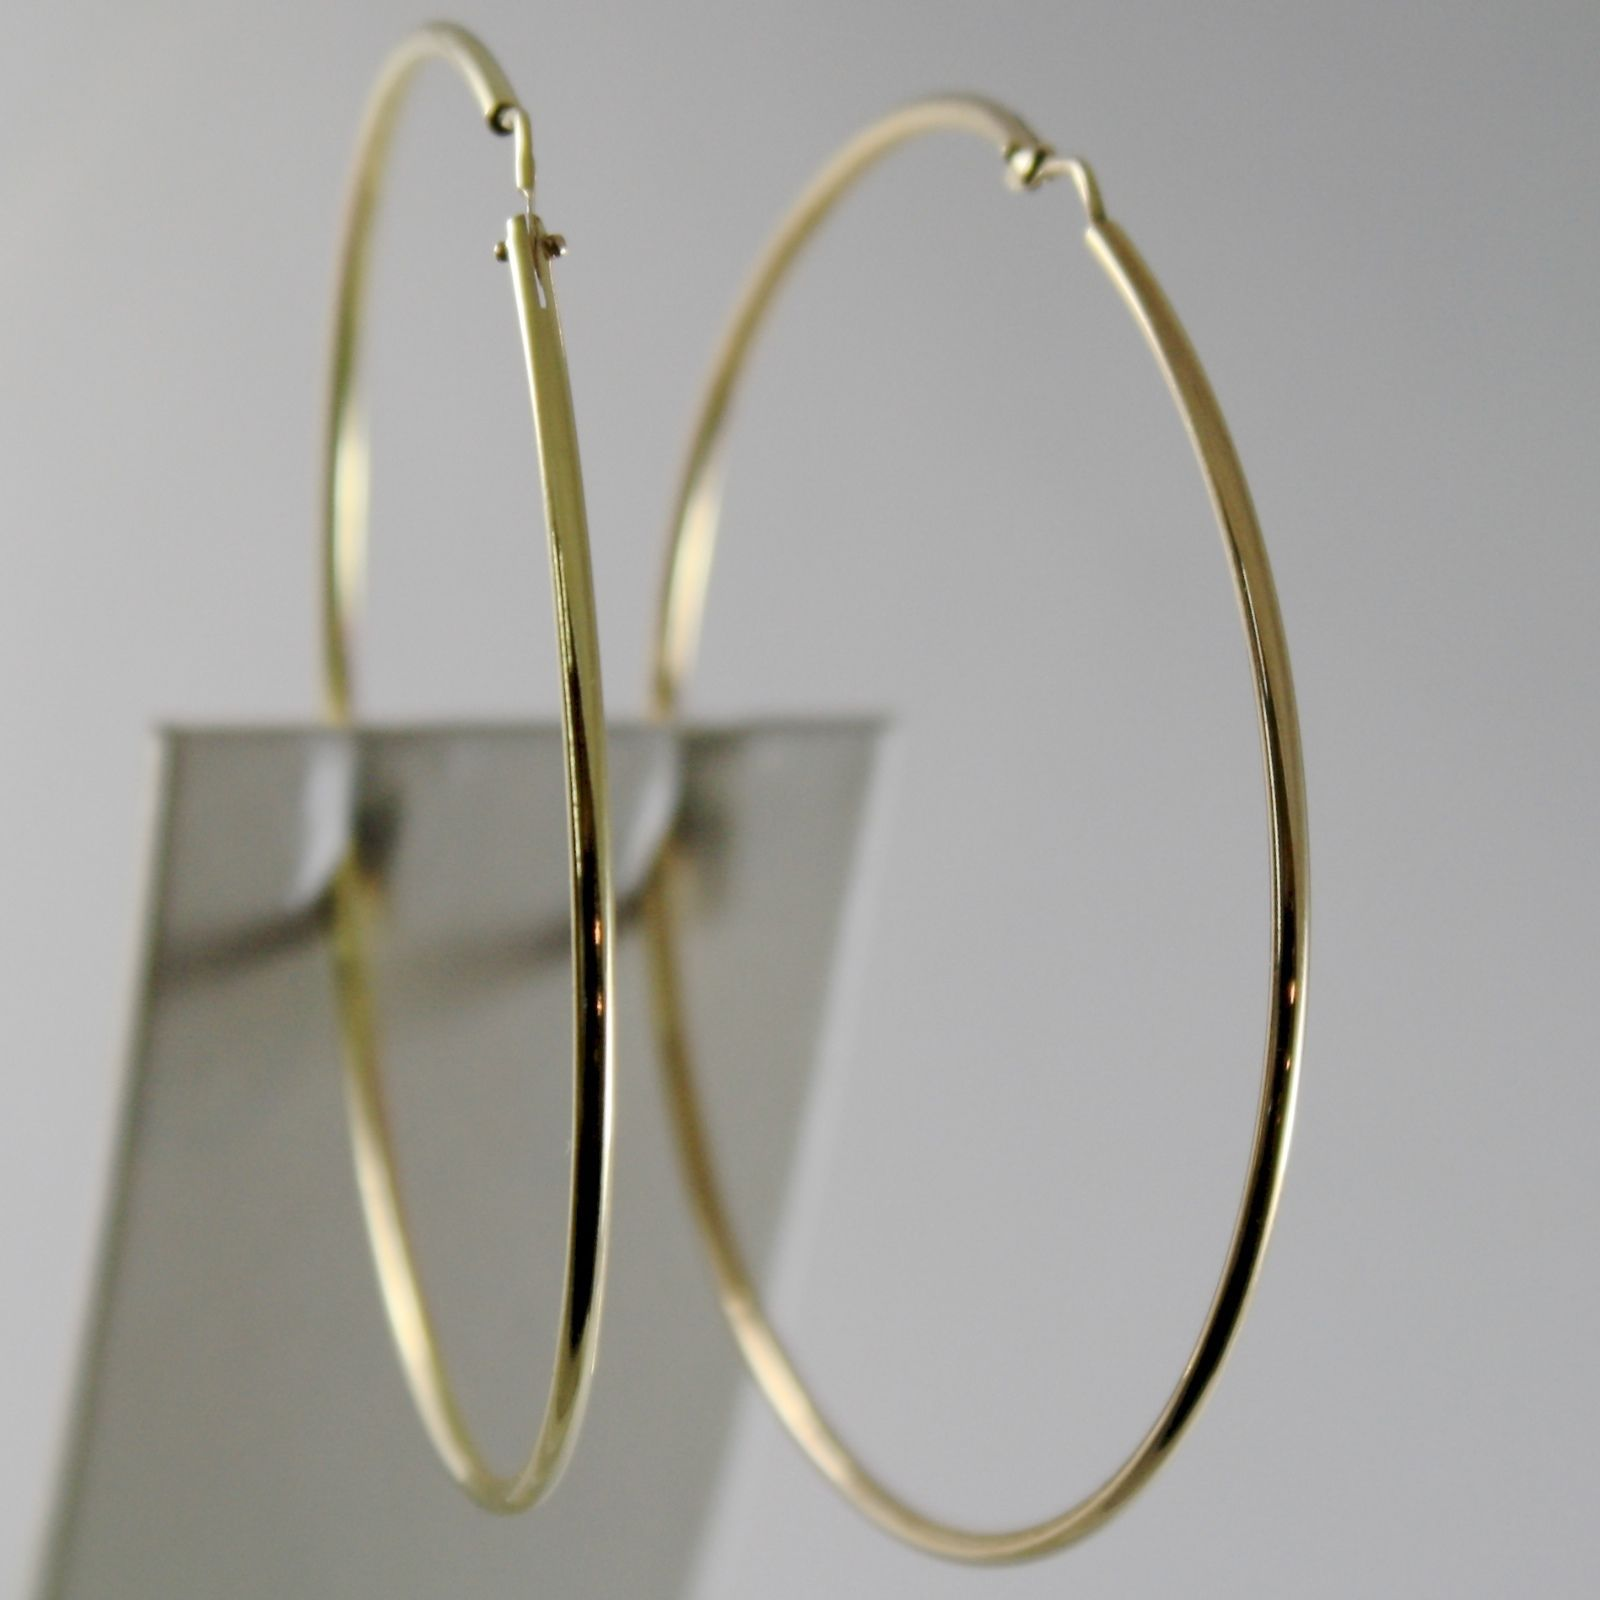 18K YELLOW GOLD EARRINGS BIG CIRCLE HOOP 63 MM 2.48 INCH DIAMETER MADE IN ITALY